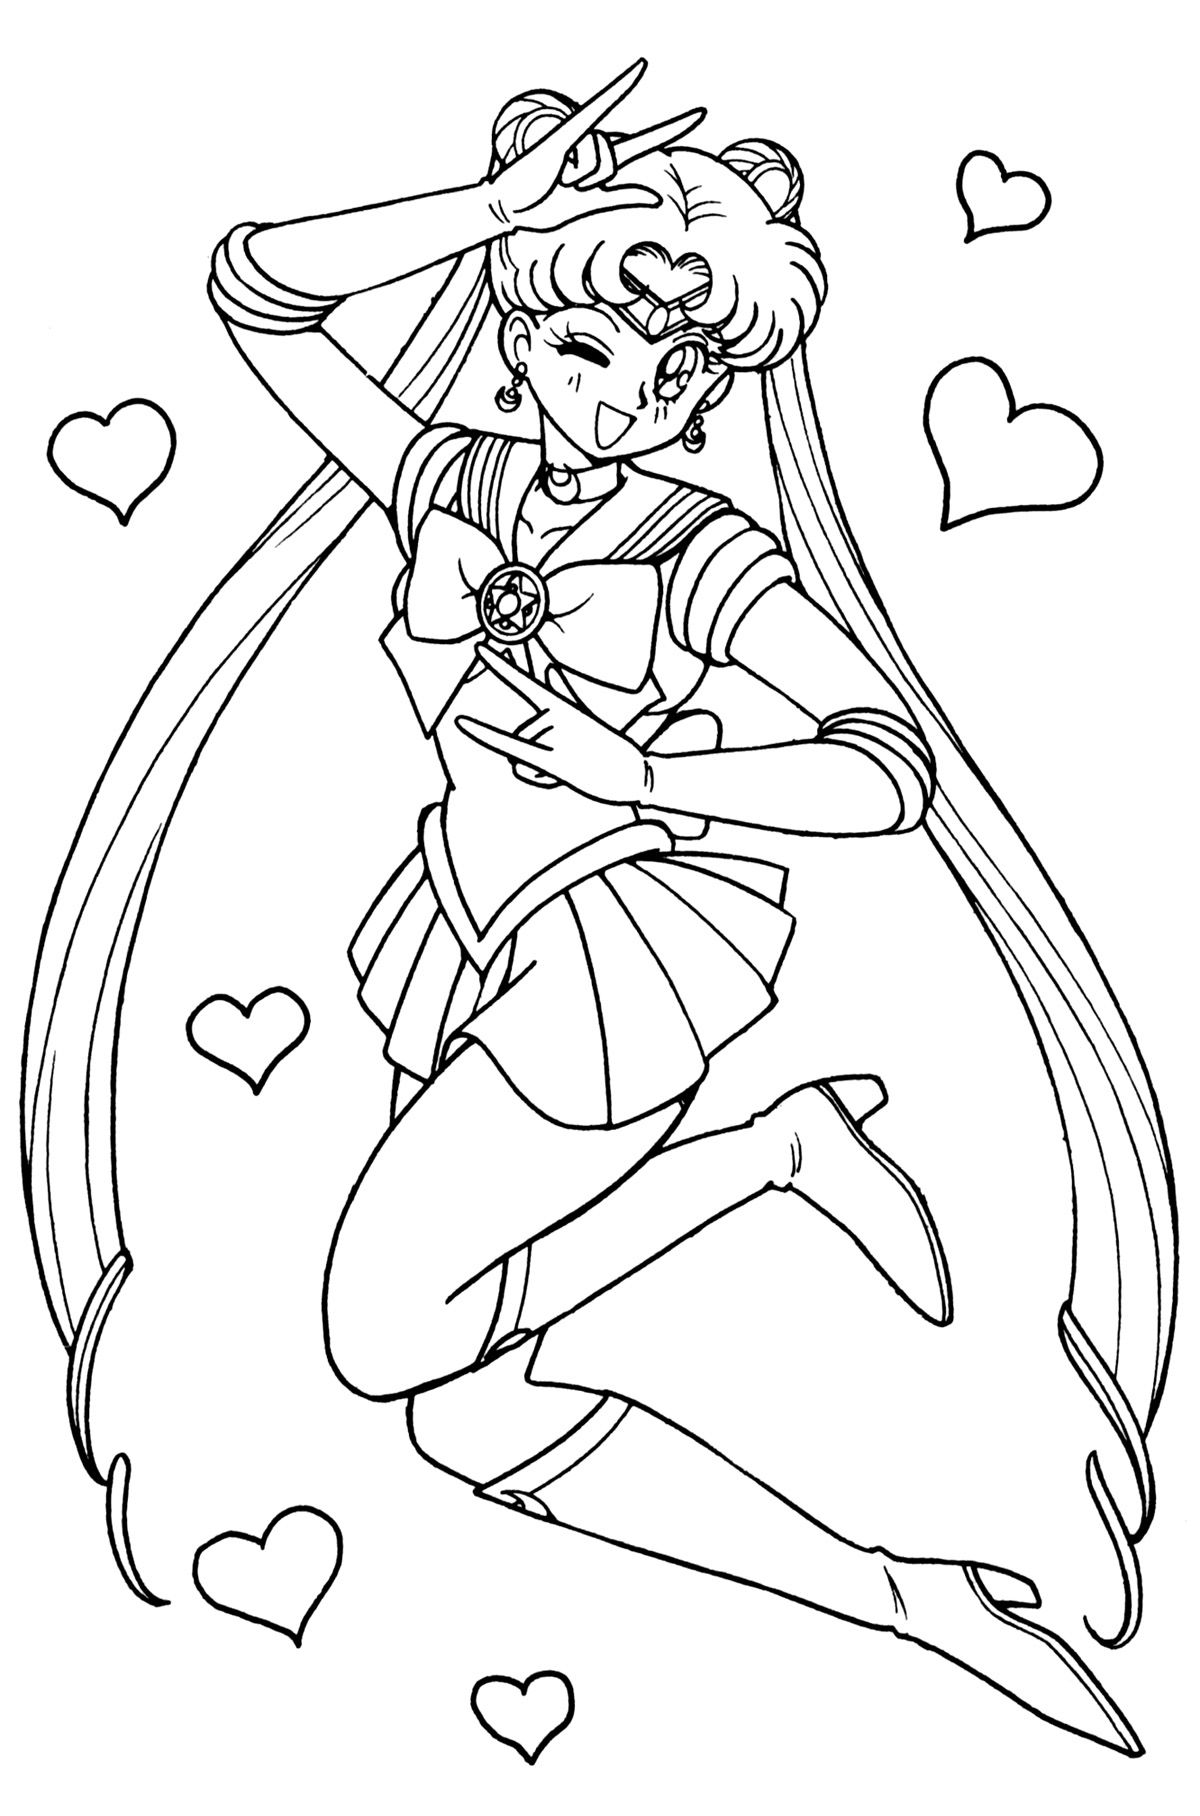 Coloring Page Sailormoon Coloring Pages 26 Sailor Moon Coloring Pages Sailor Moon Wallpaper Coloring Pages